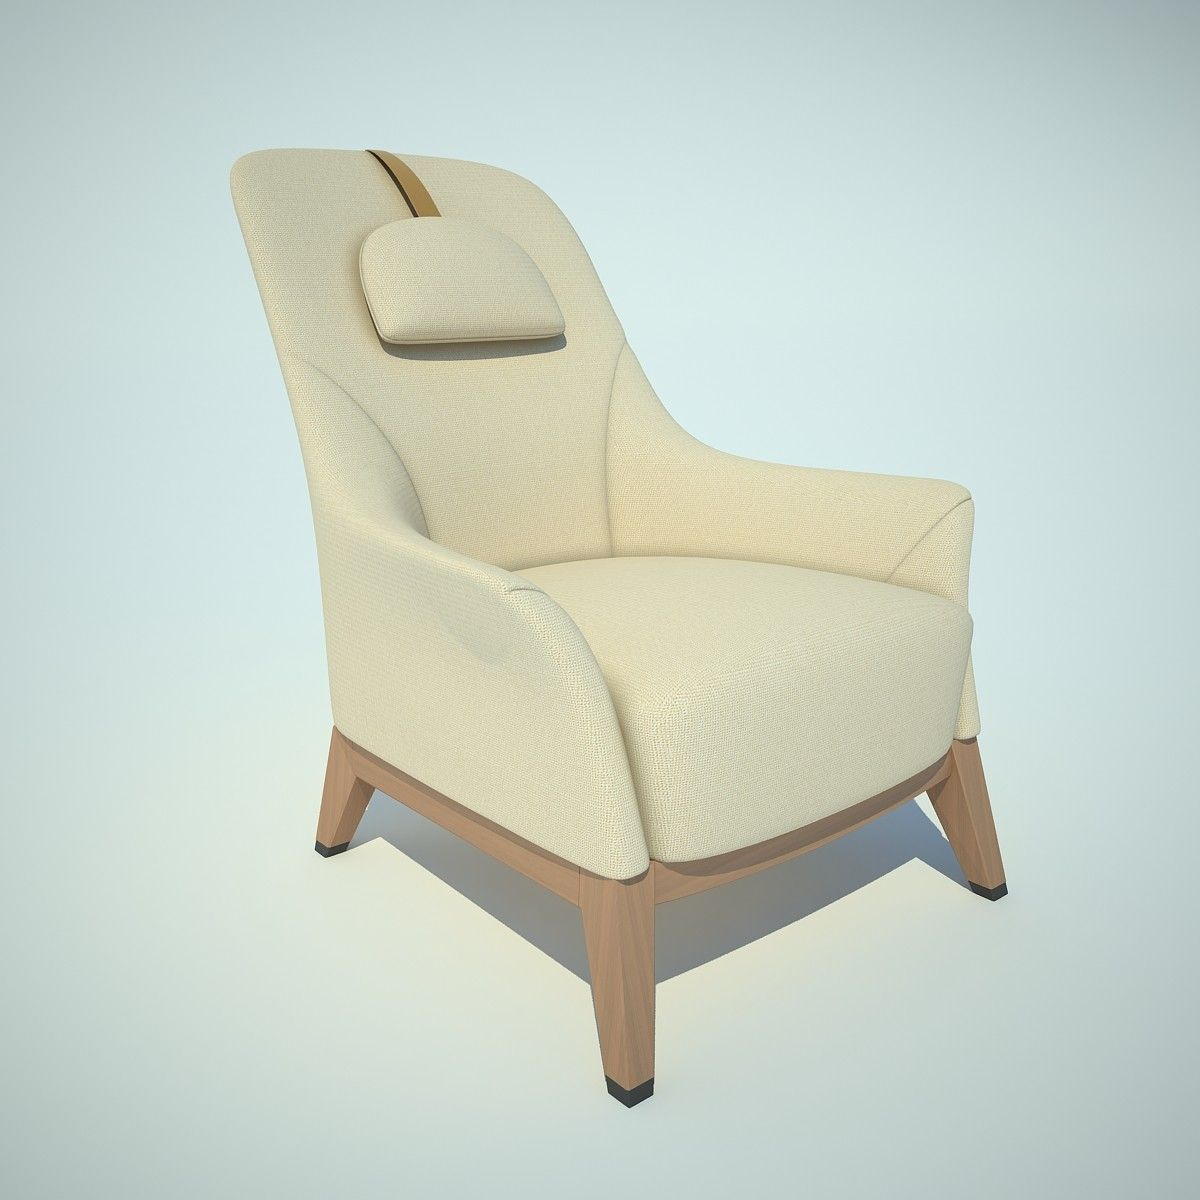 3Ds Normal Chair 3D Model